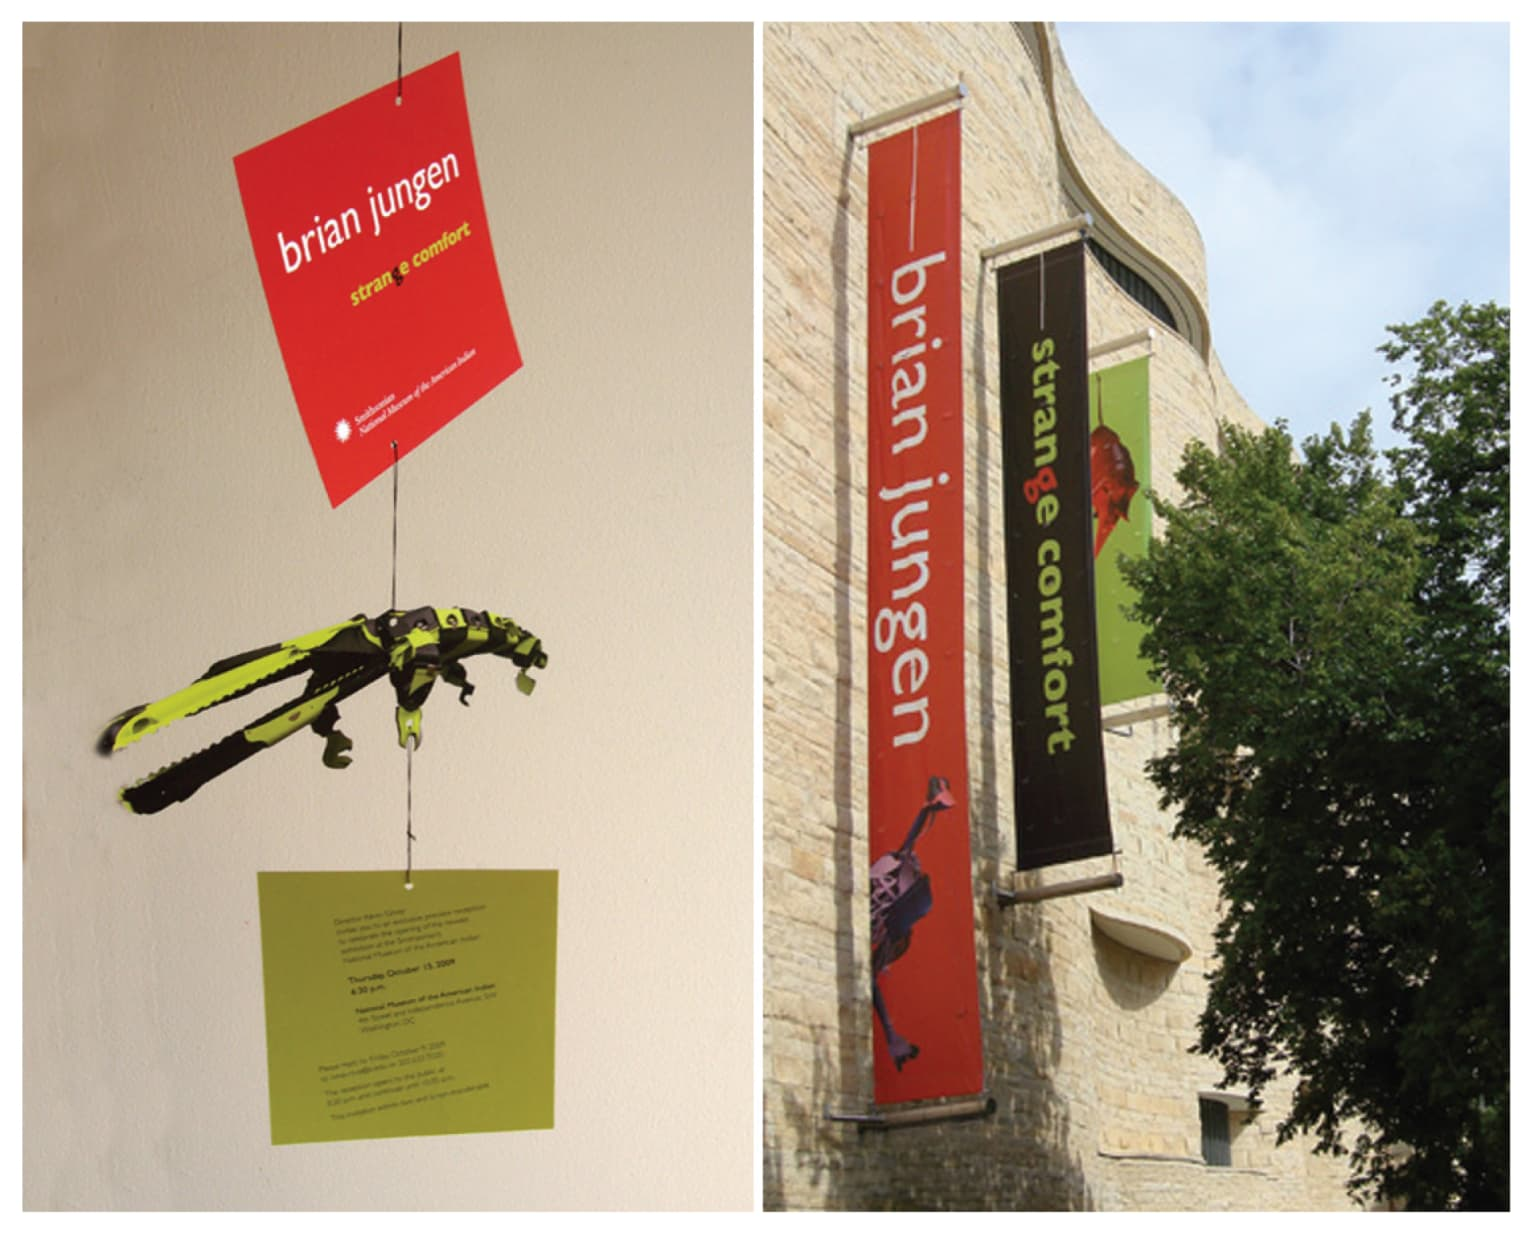 National Museum of the American Indian Exhibition Identity (signage, invitation, brochure, etc.))